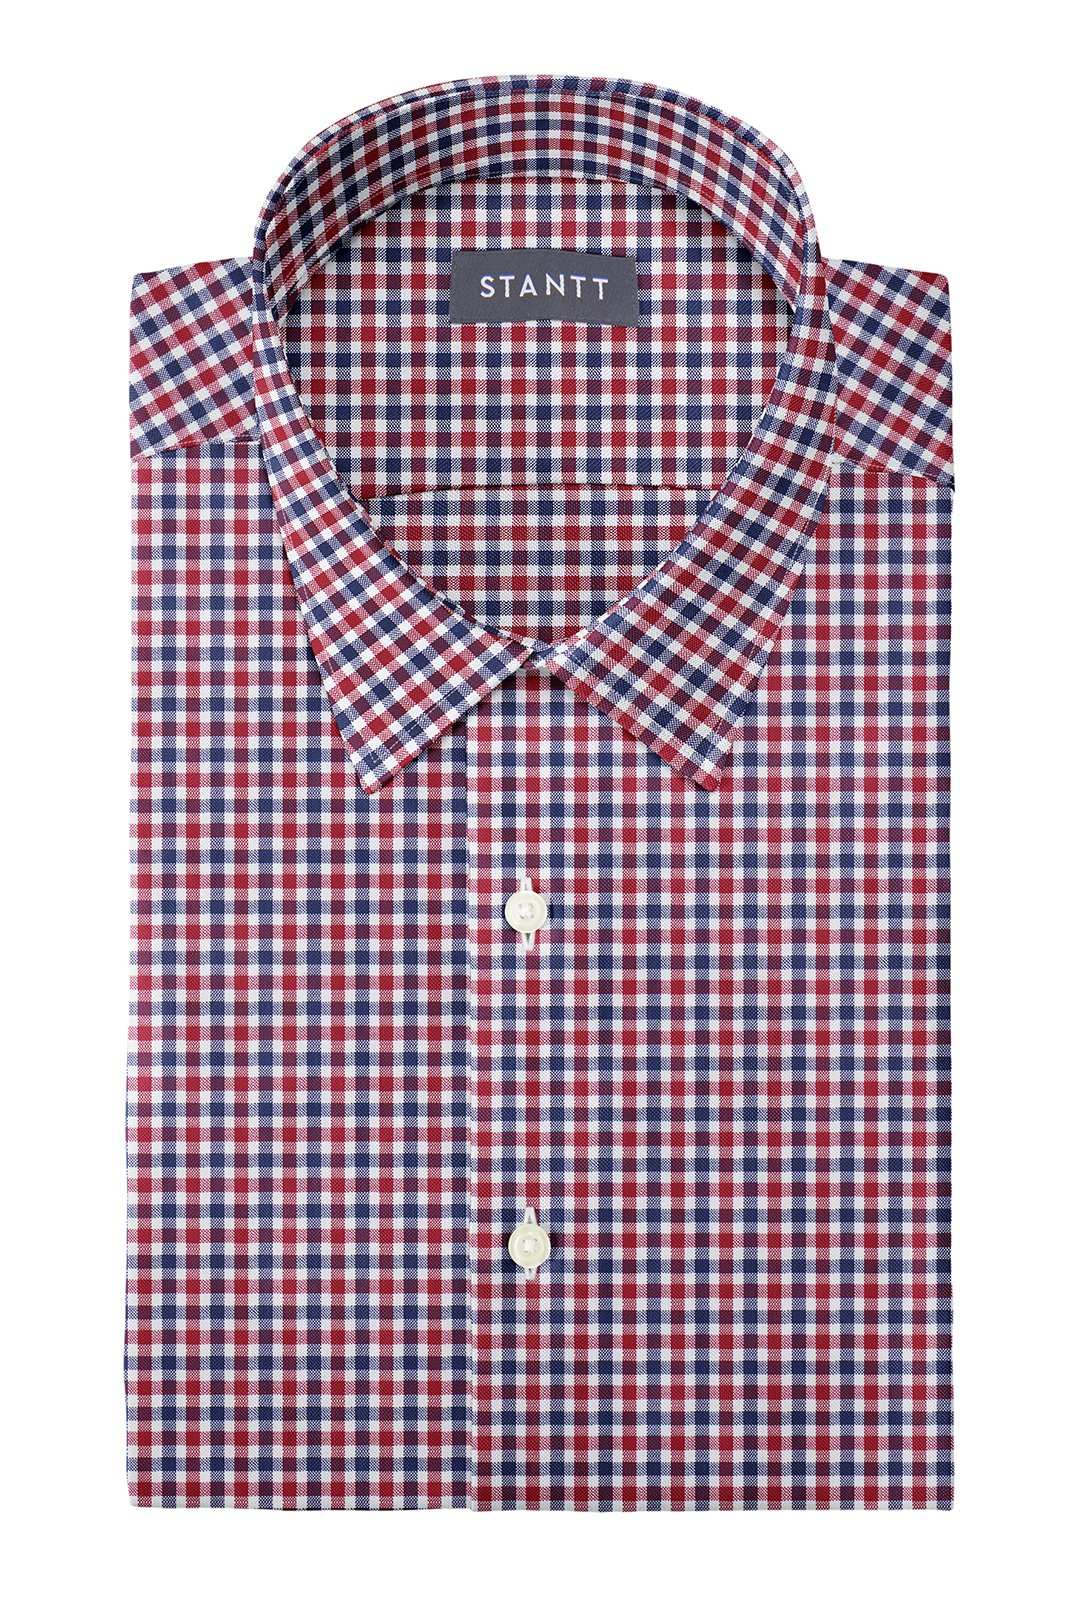 Red and Navy Club Check Oxford: Semi-Spread Collar, French Cuff